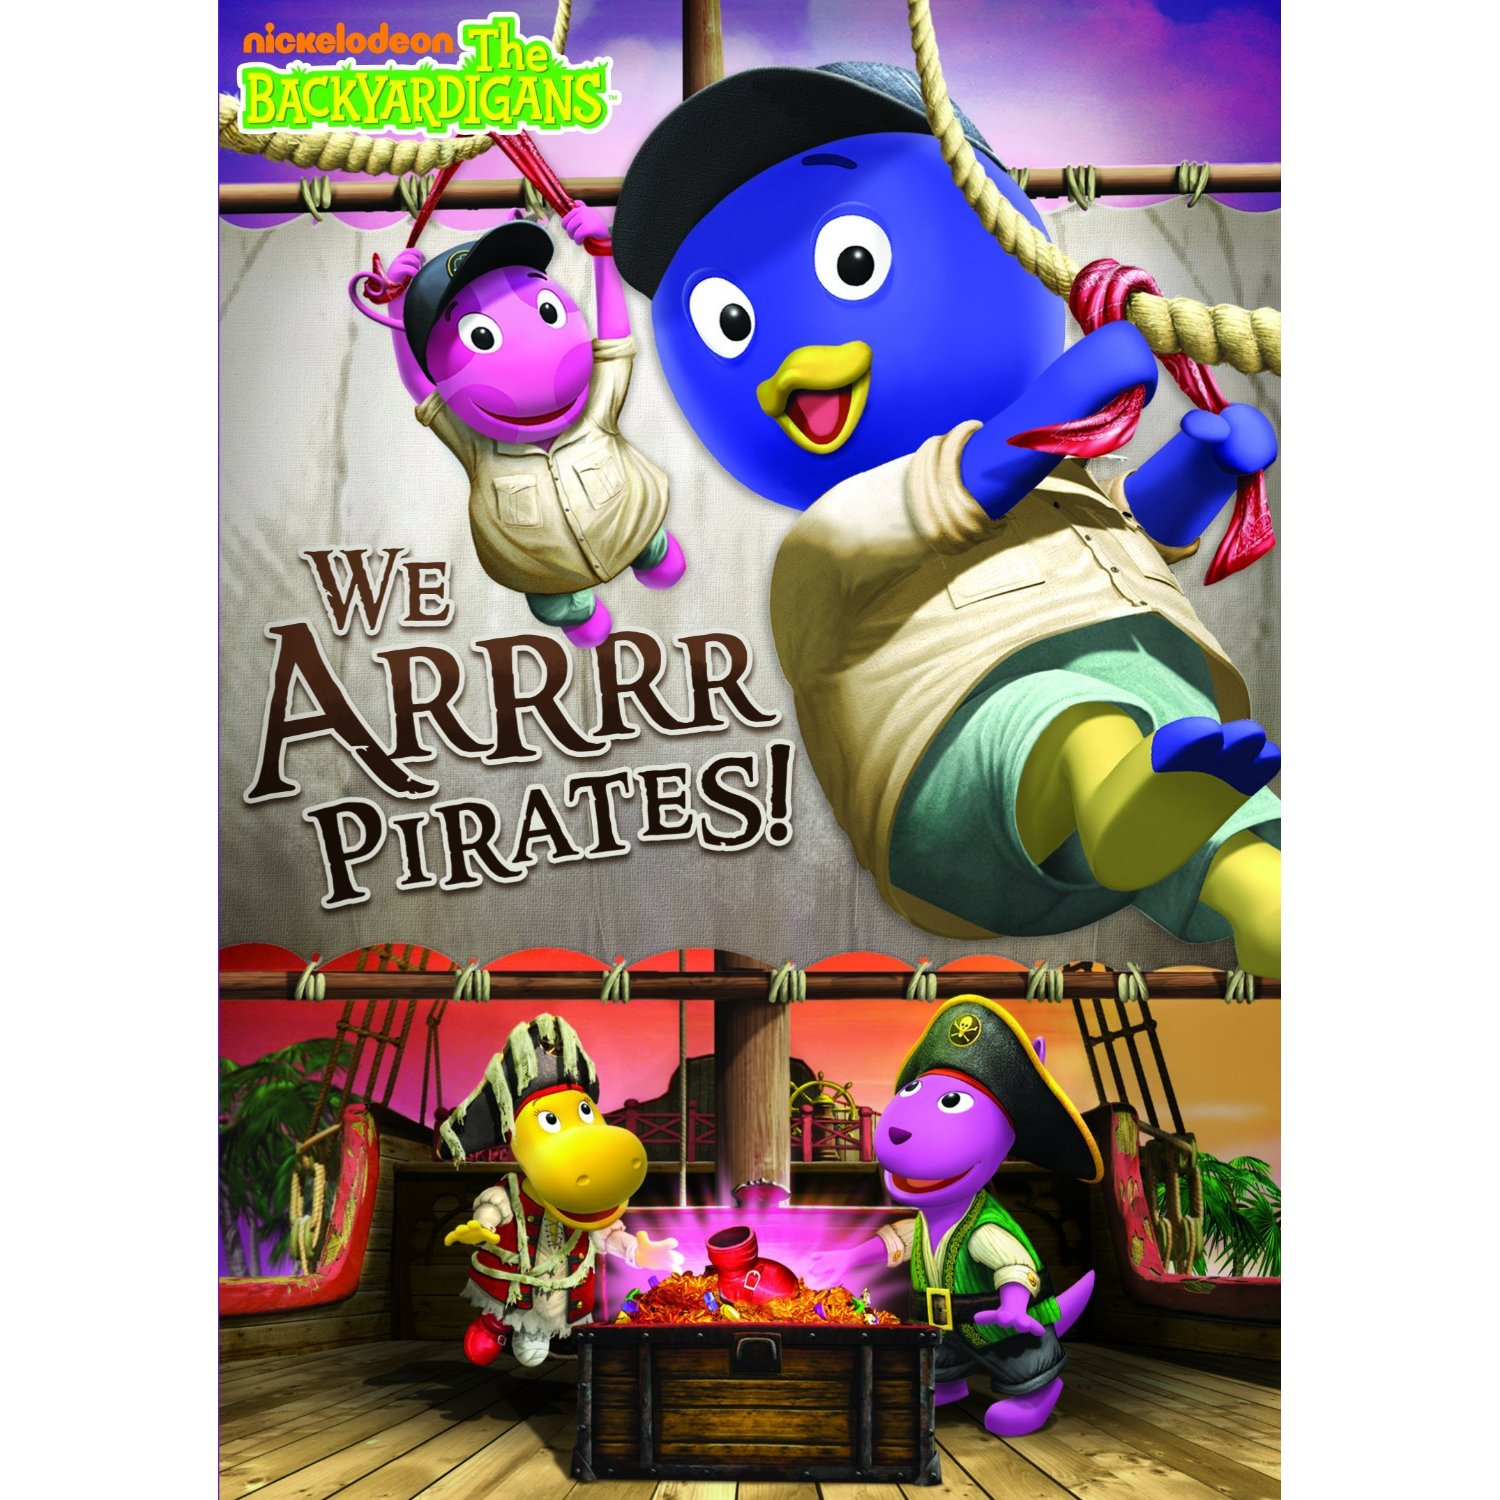 The Backyardigans: We Arrrr Pirates DVD Review and Giveaway